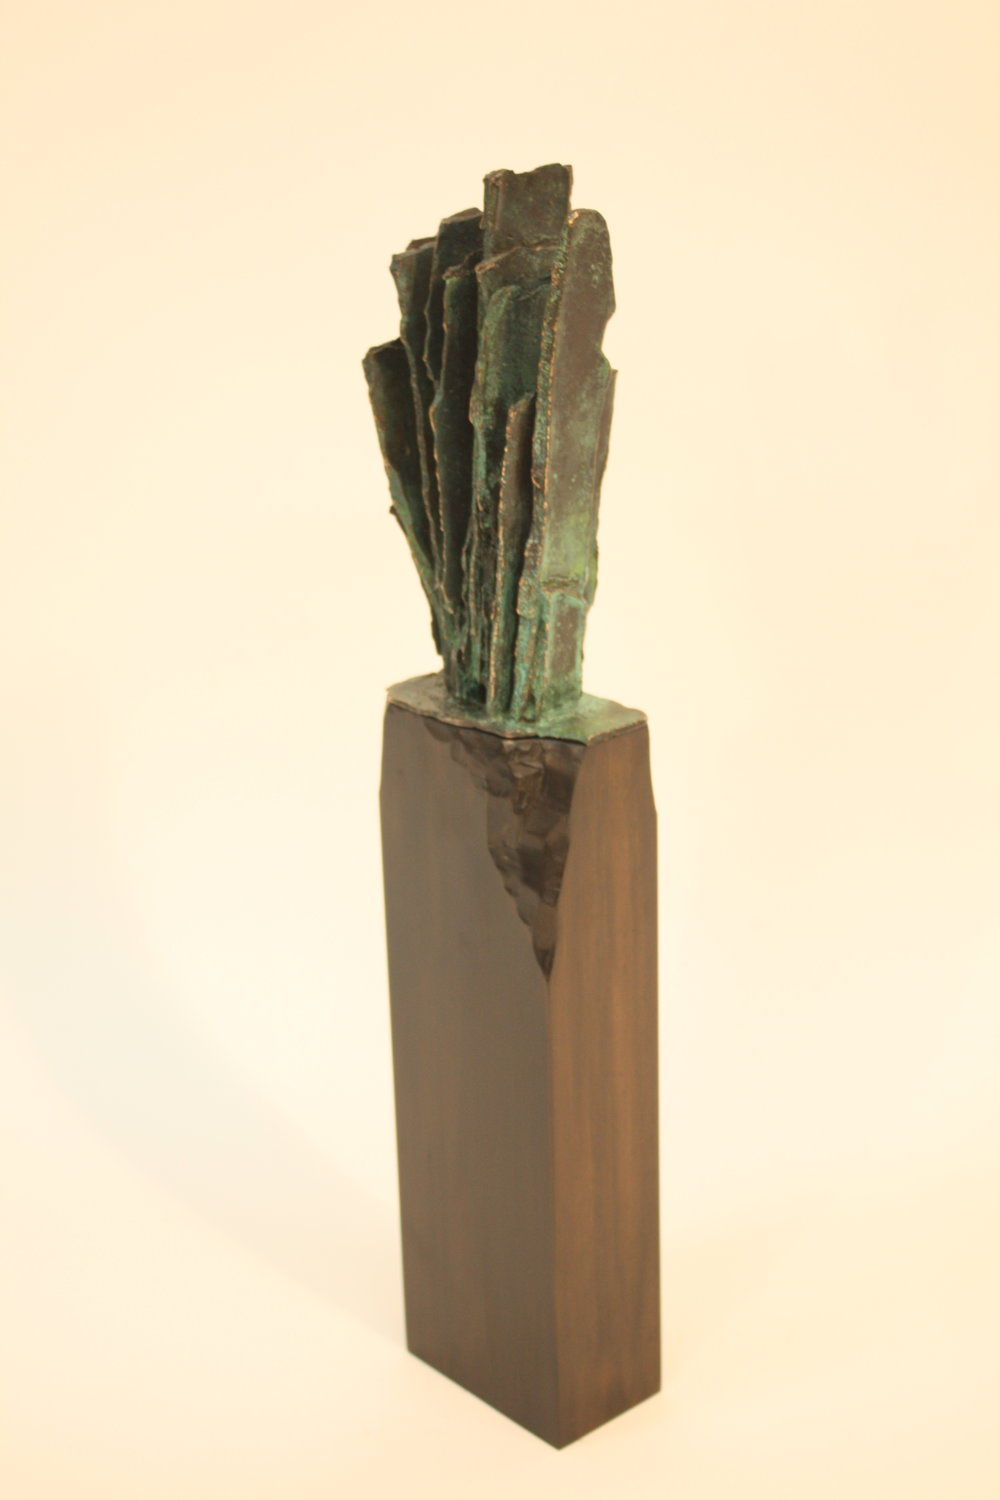 The Pillar of Freedom is Falling Apart - 2017Bronze, ebonised rimu50 x 6 x 10 cmSOLD